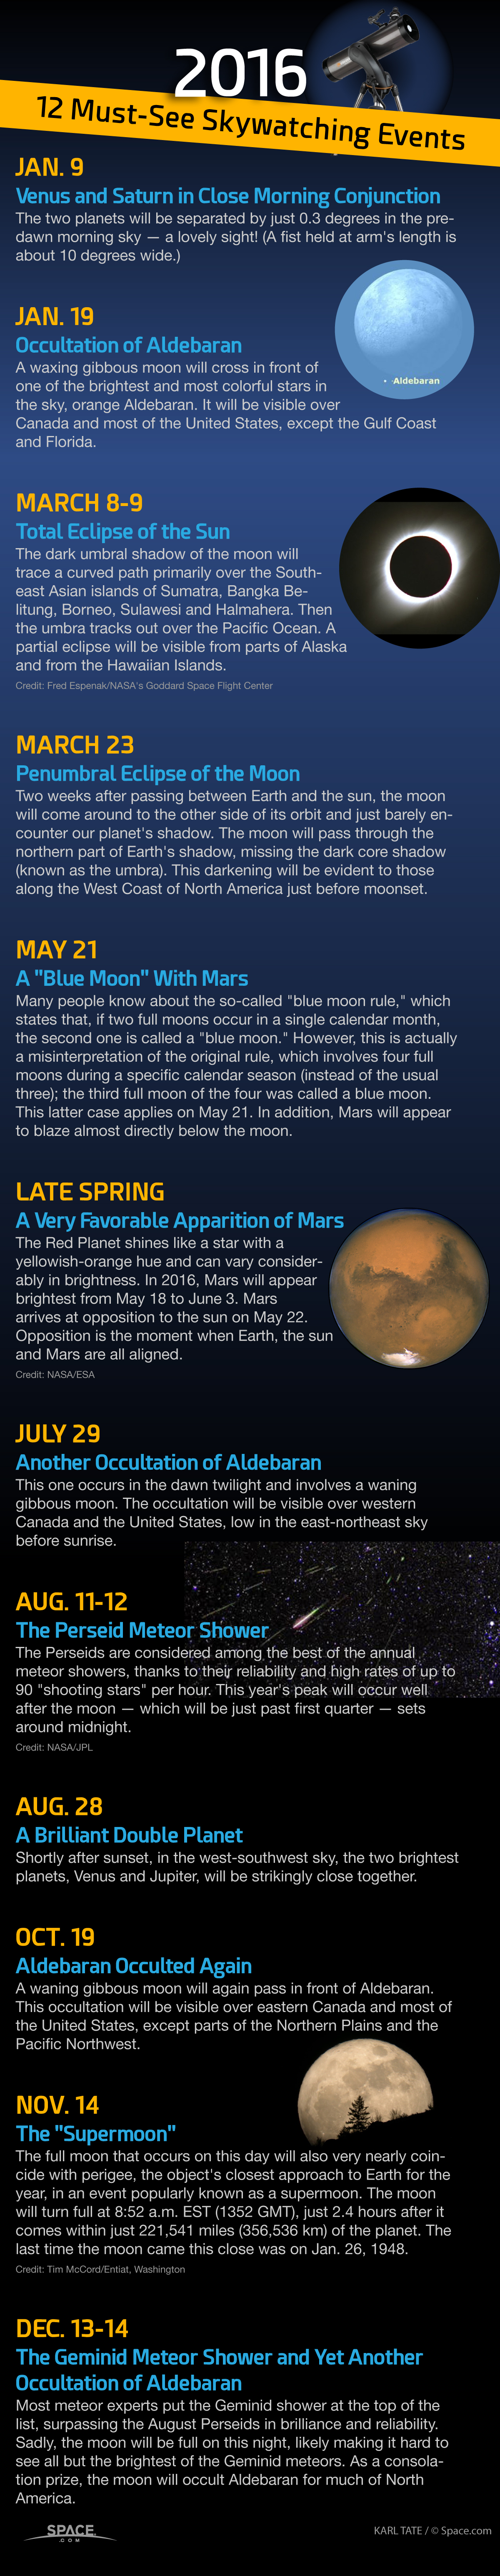 Skywatching In 2016: The Year's Must-See Events (Infographic)